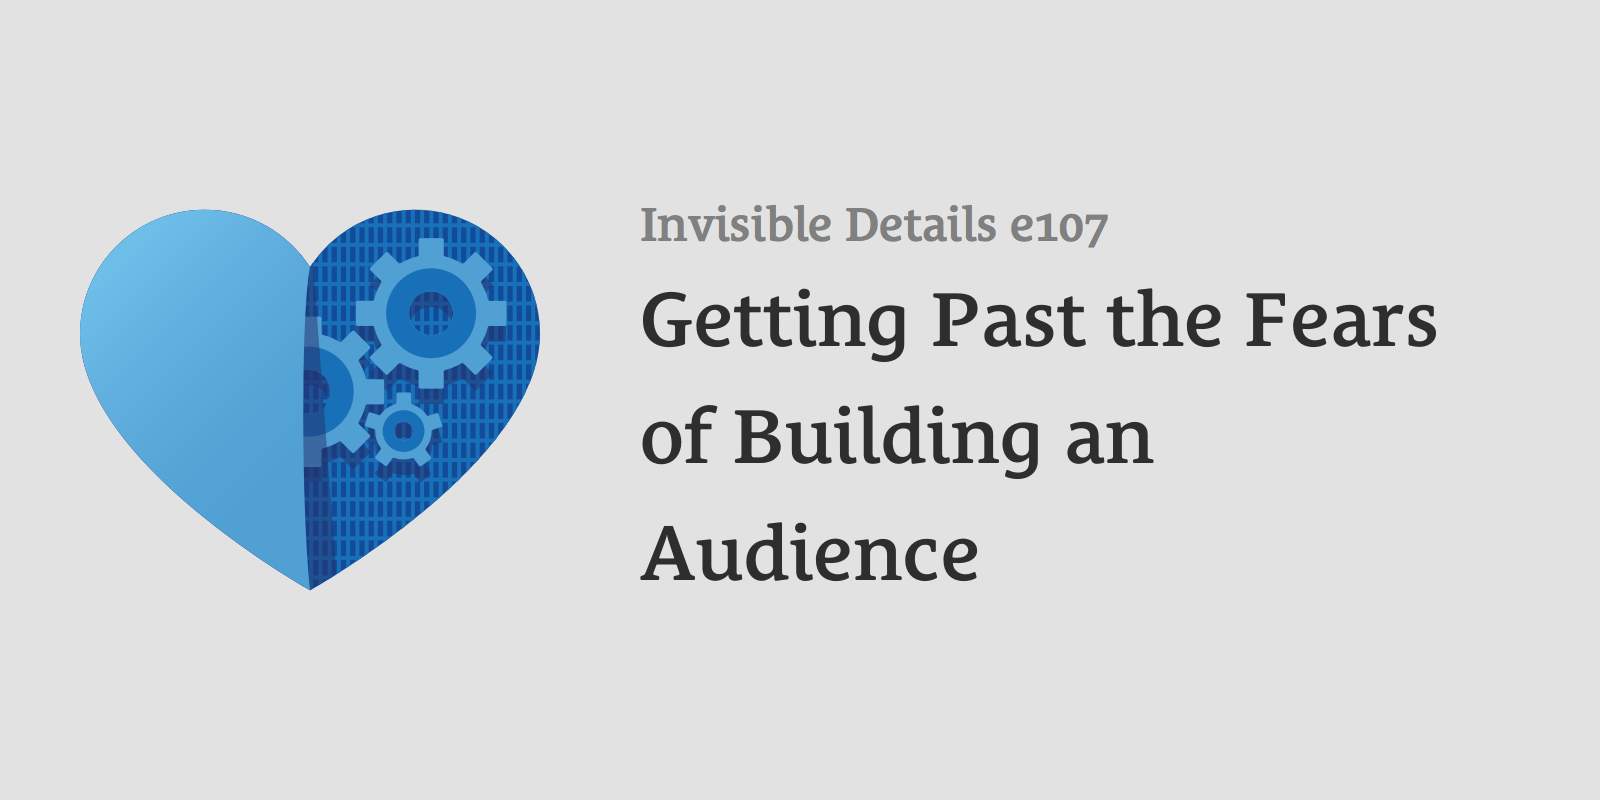 Getting Past the Fears of Building an Audience